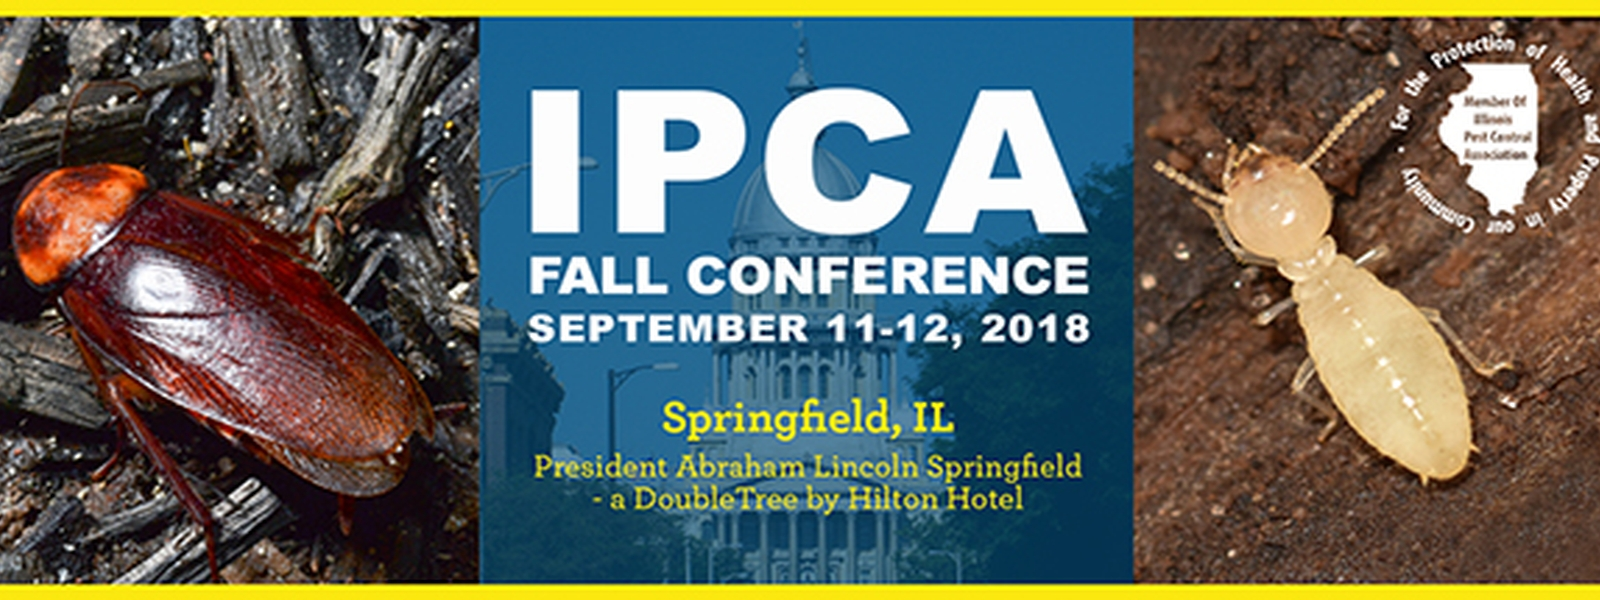 IPCA Fall 2018 Conference Banner